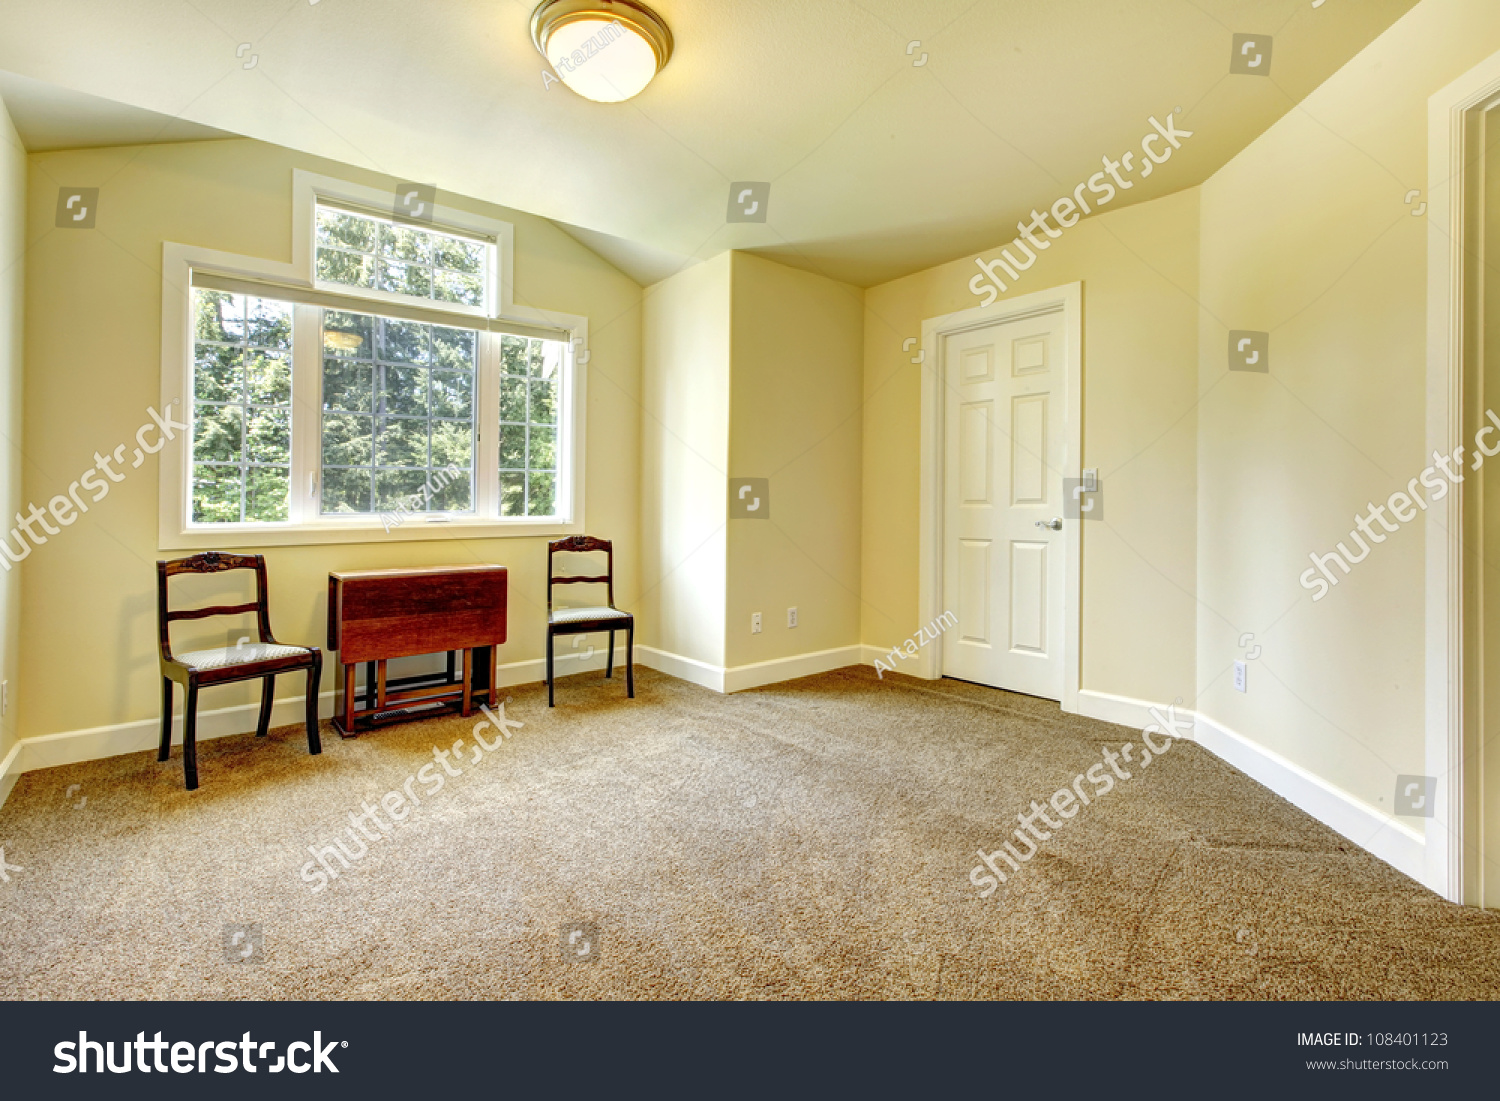 New Empty Room Yellow Walls Brown Stock Photo (Safe to Use ...